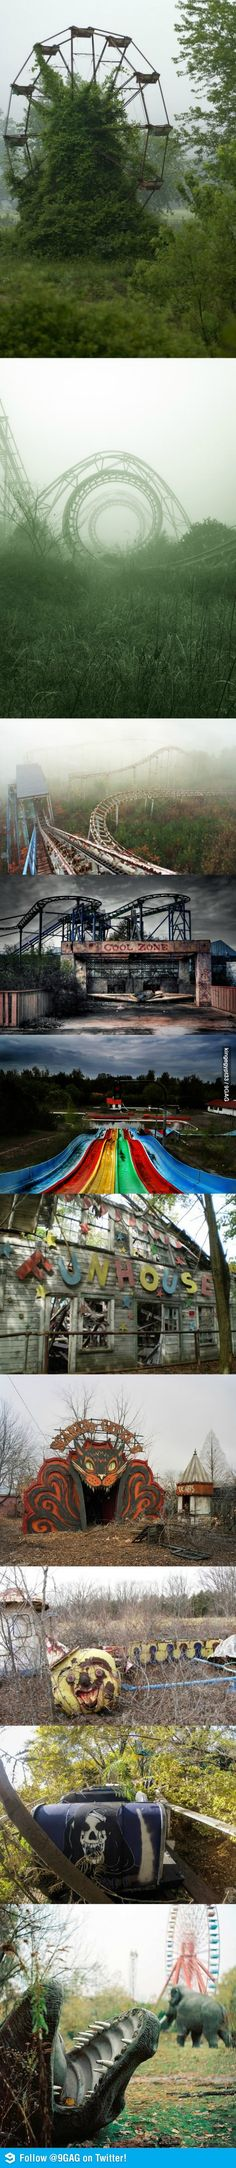 I've always been fascinated by abandoned places and the life that's left behind.  abandoned amusement park